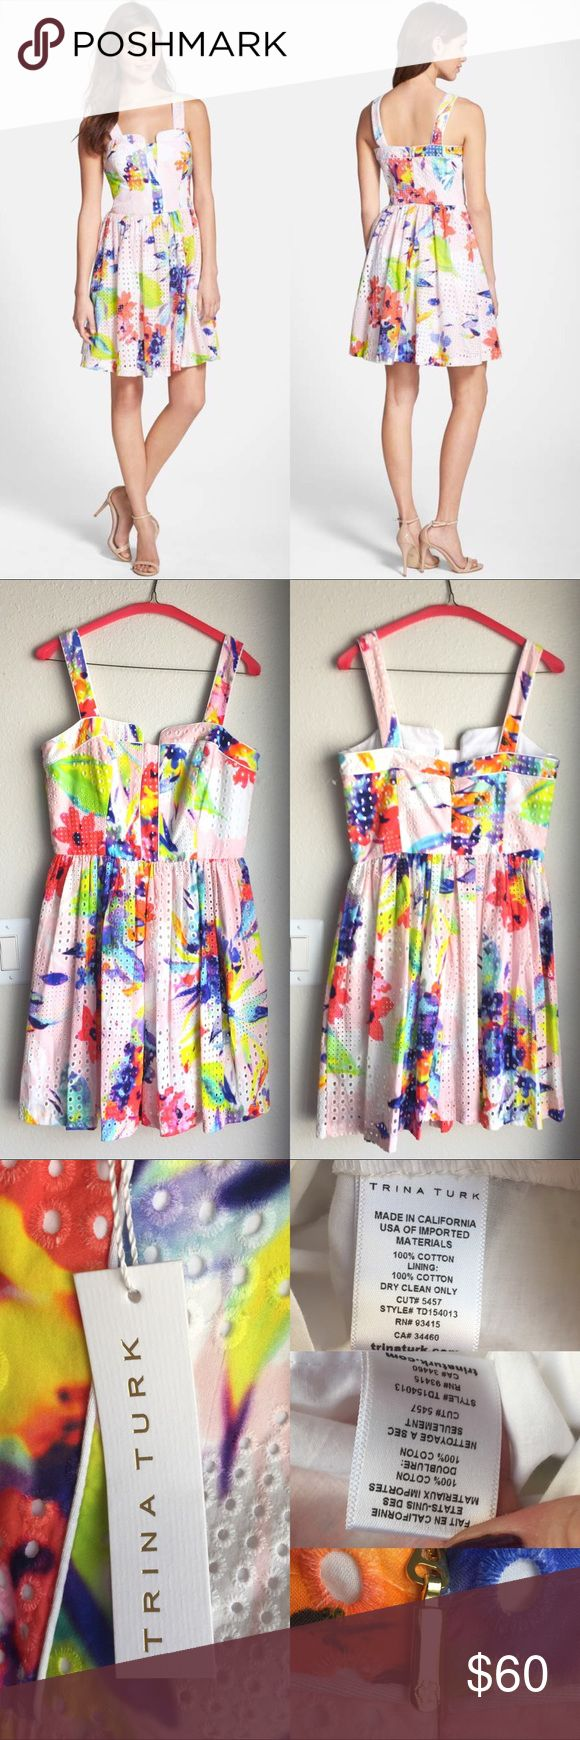 """🆕NWT Trina Turk Elin Eyelet Rainbow Dress Authentic Trina Turk """"Elin"""" dress, new with tag. This faintly flirtatious dress, exuberantly painted in neon, is a refreshing take on classic cotton eyelet. A piped, engineered bodice complements the modernized flower print. Size 6, approx 36"""" length, 17"""" across bust, 14"""" across waist. Back zip closure. Side pockets. Fully lined. Blogger fave! As seen on Sequins & Things and Fancy Ashley, cover photos credit Nordstrom. ❌No trades❌Price firm unless…"""